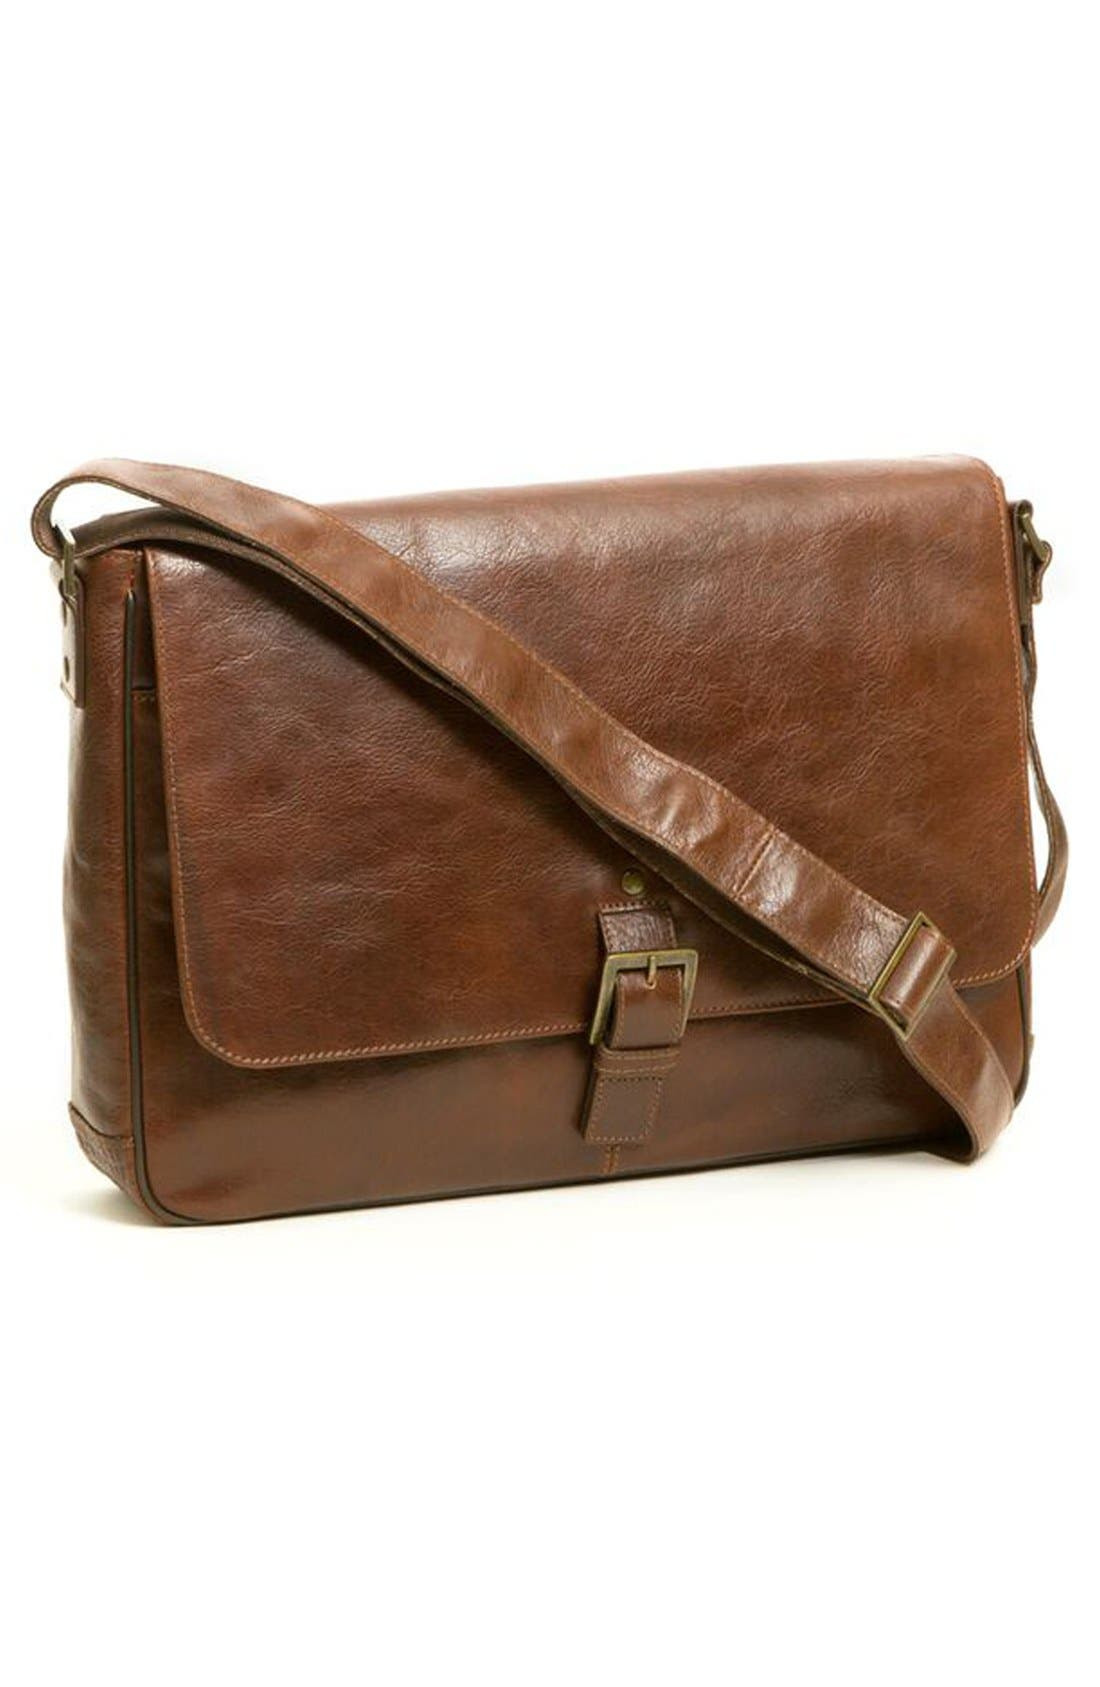 'Becker' Leather Messenger Bag,                             Alternate thumbnail 5, color,                             Whiskey